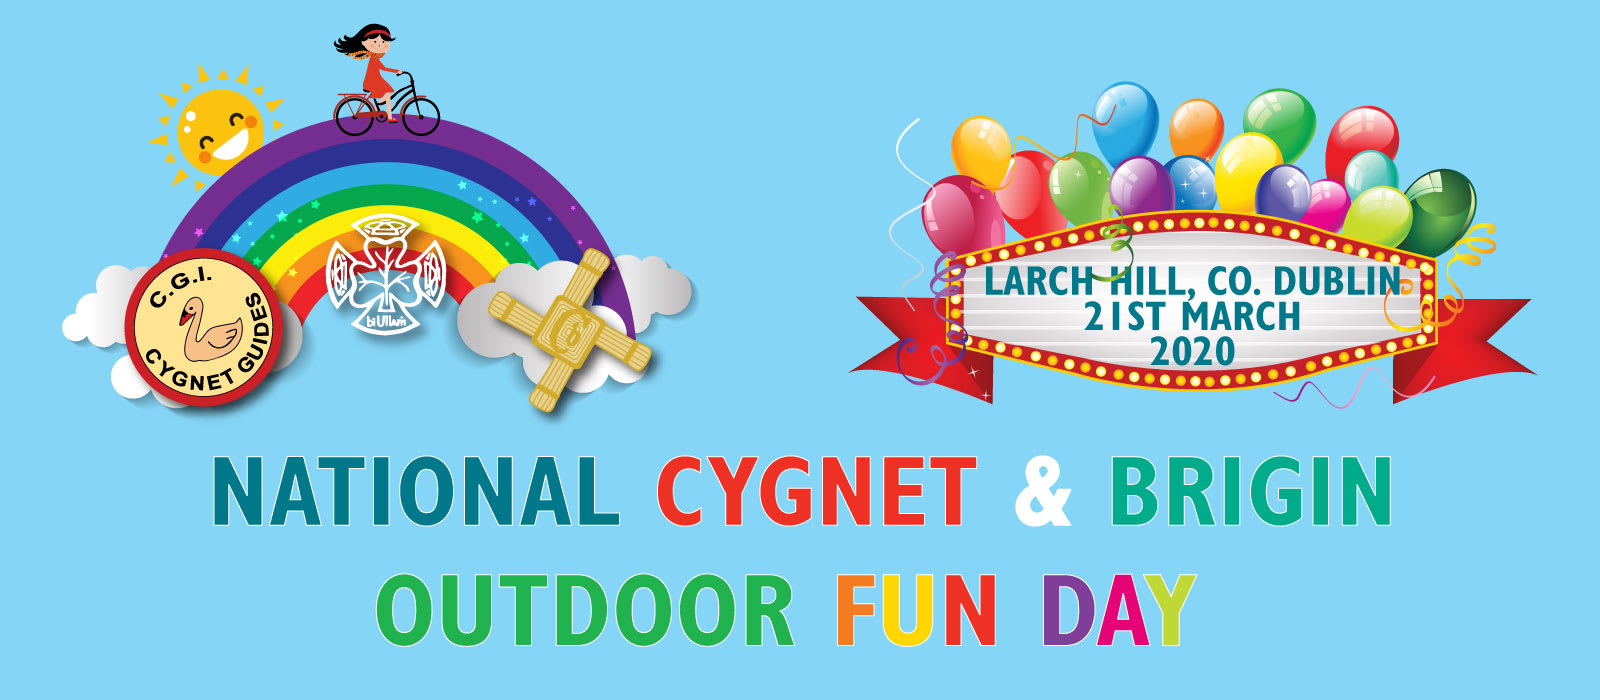 Banner Image for National Cygnet & Brigin Day 2020